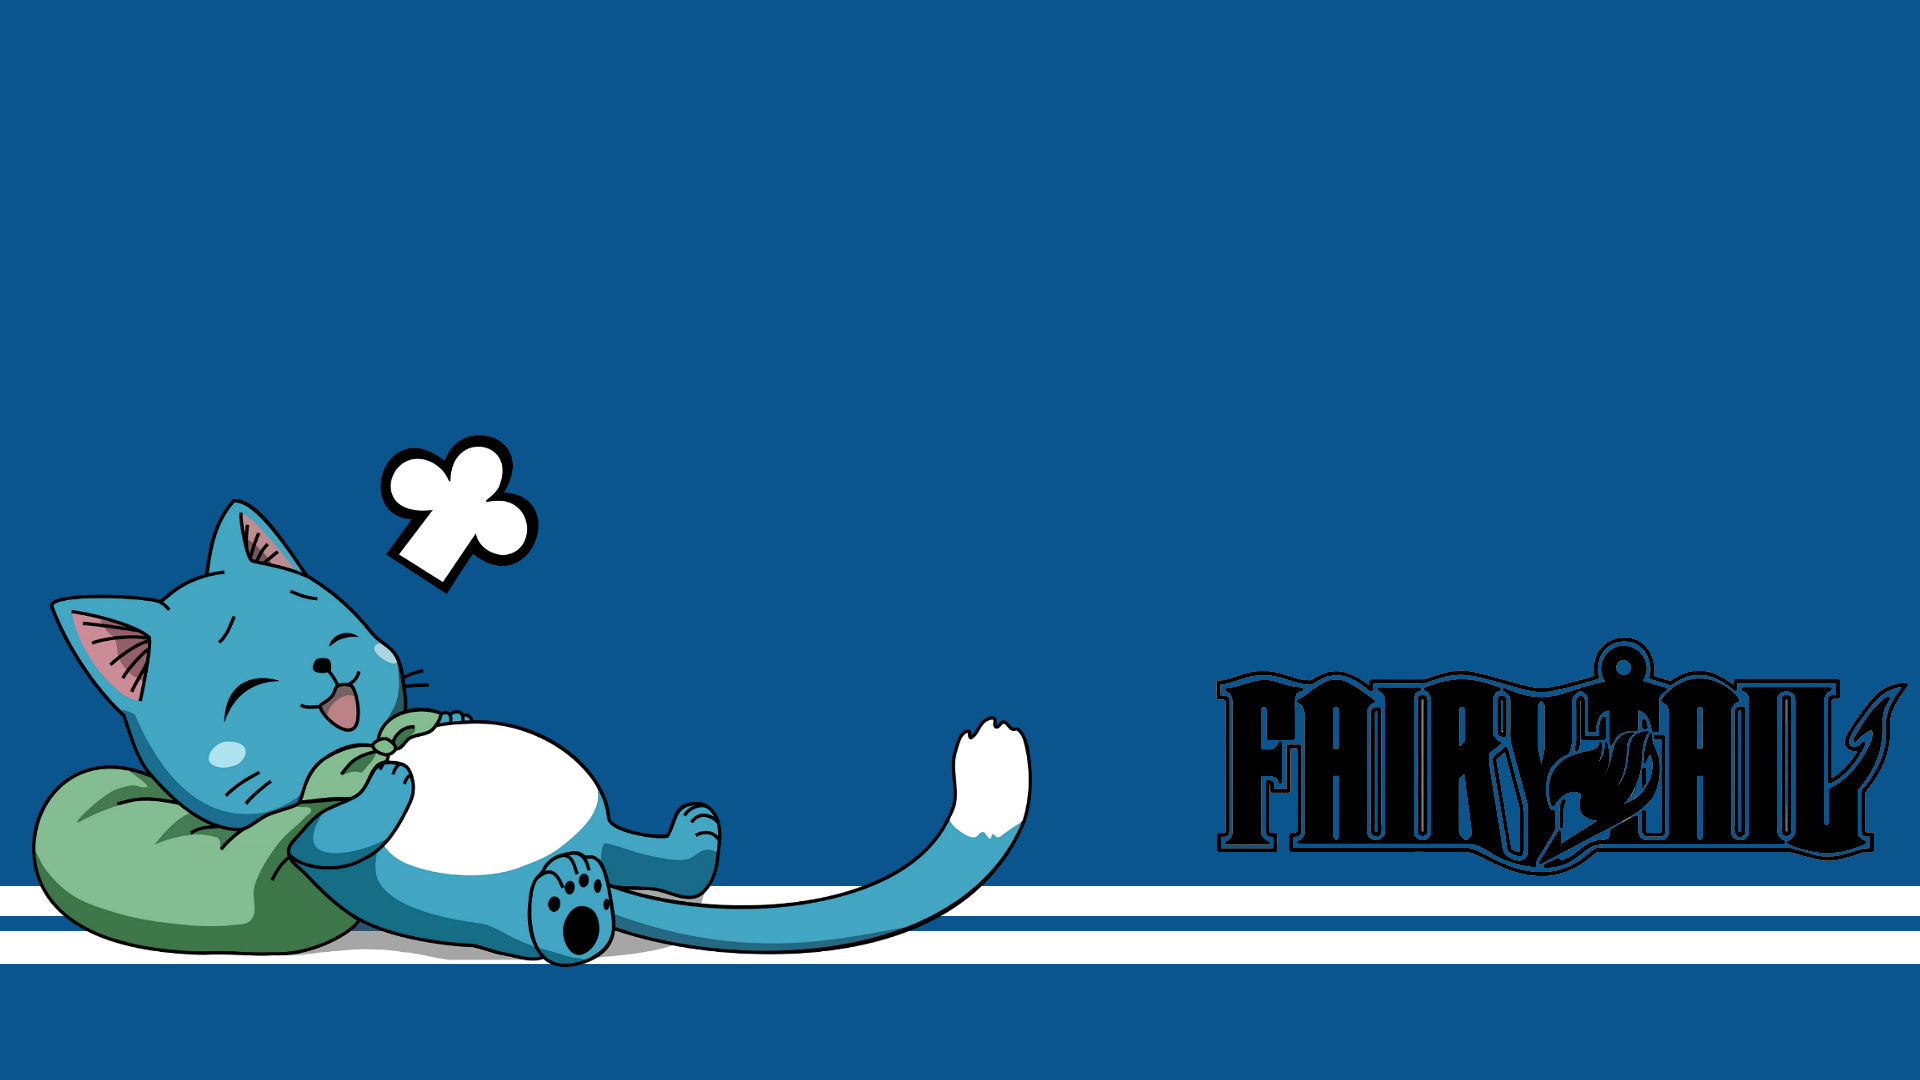 anime Wallpaper Fairy Tail Wallpapers Photo All Wallpaper Desktop